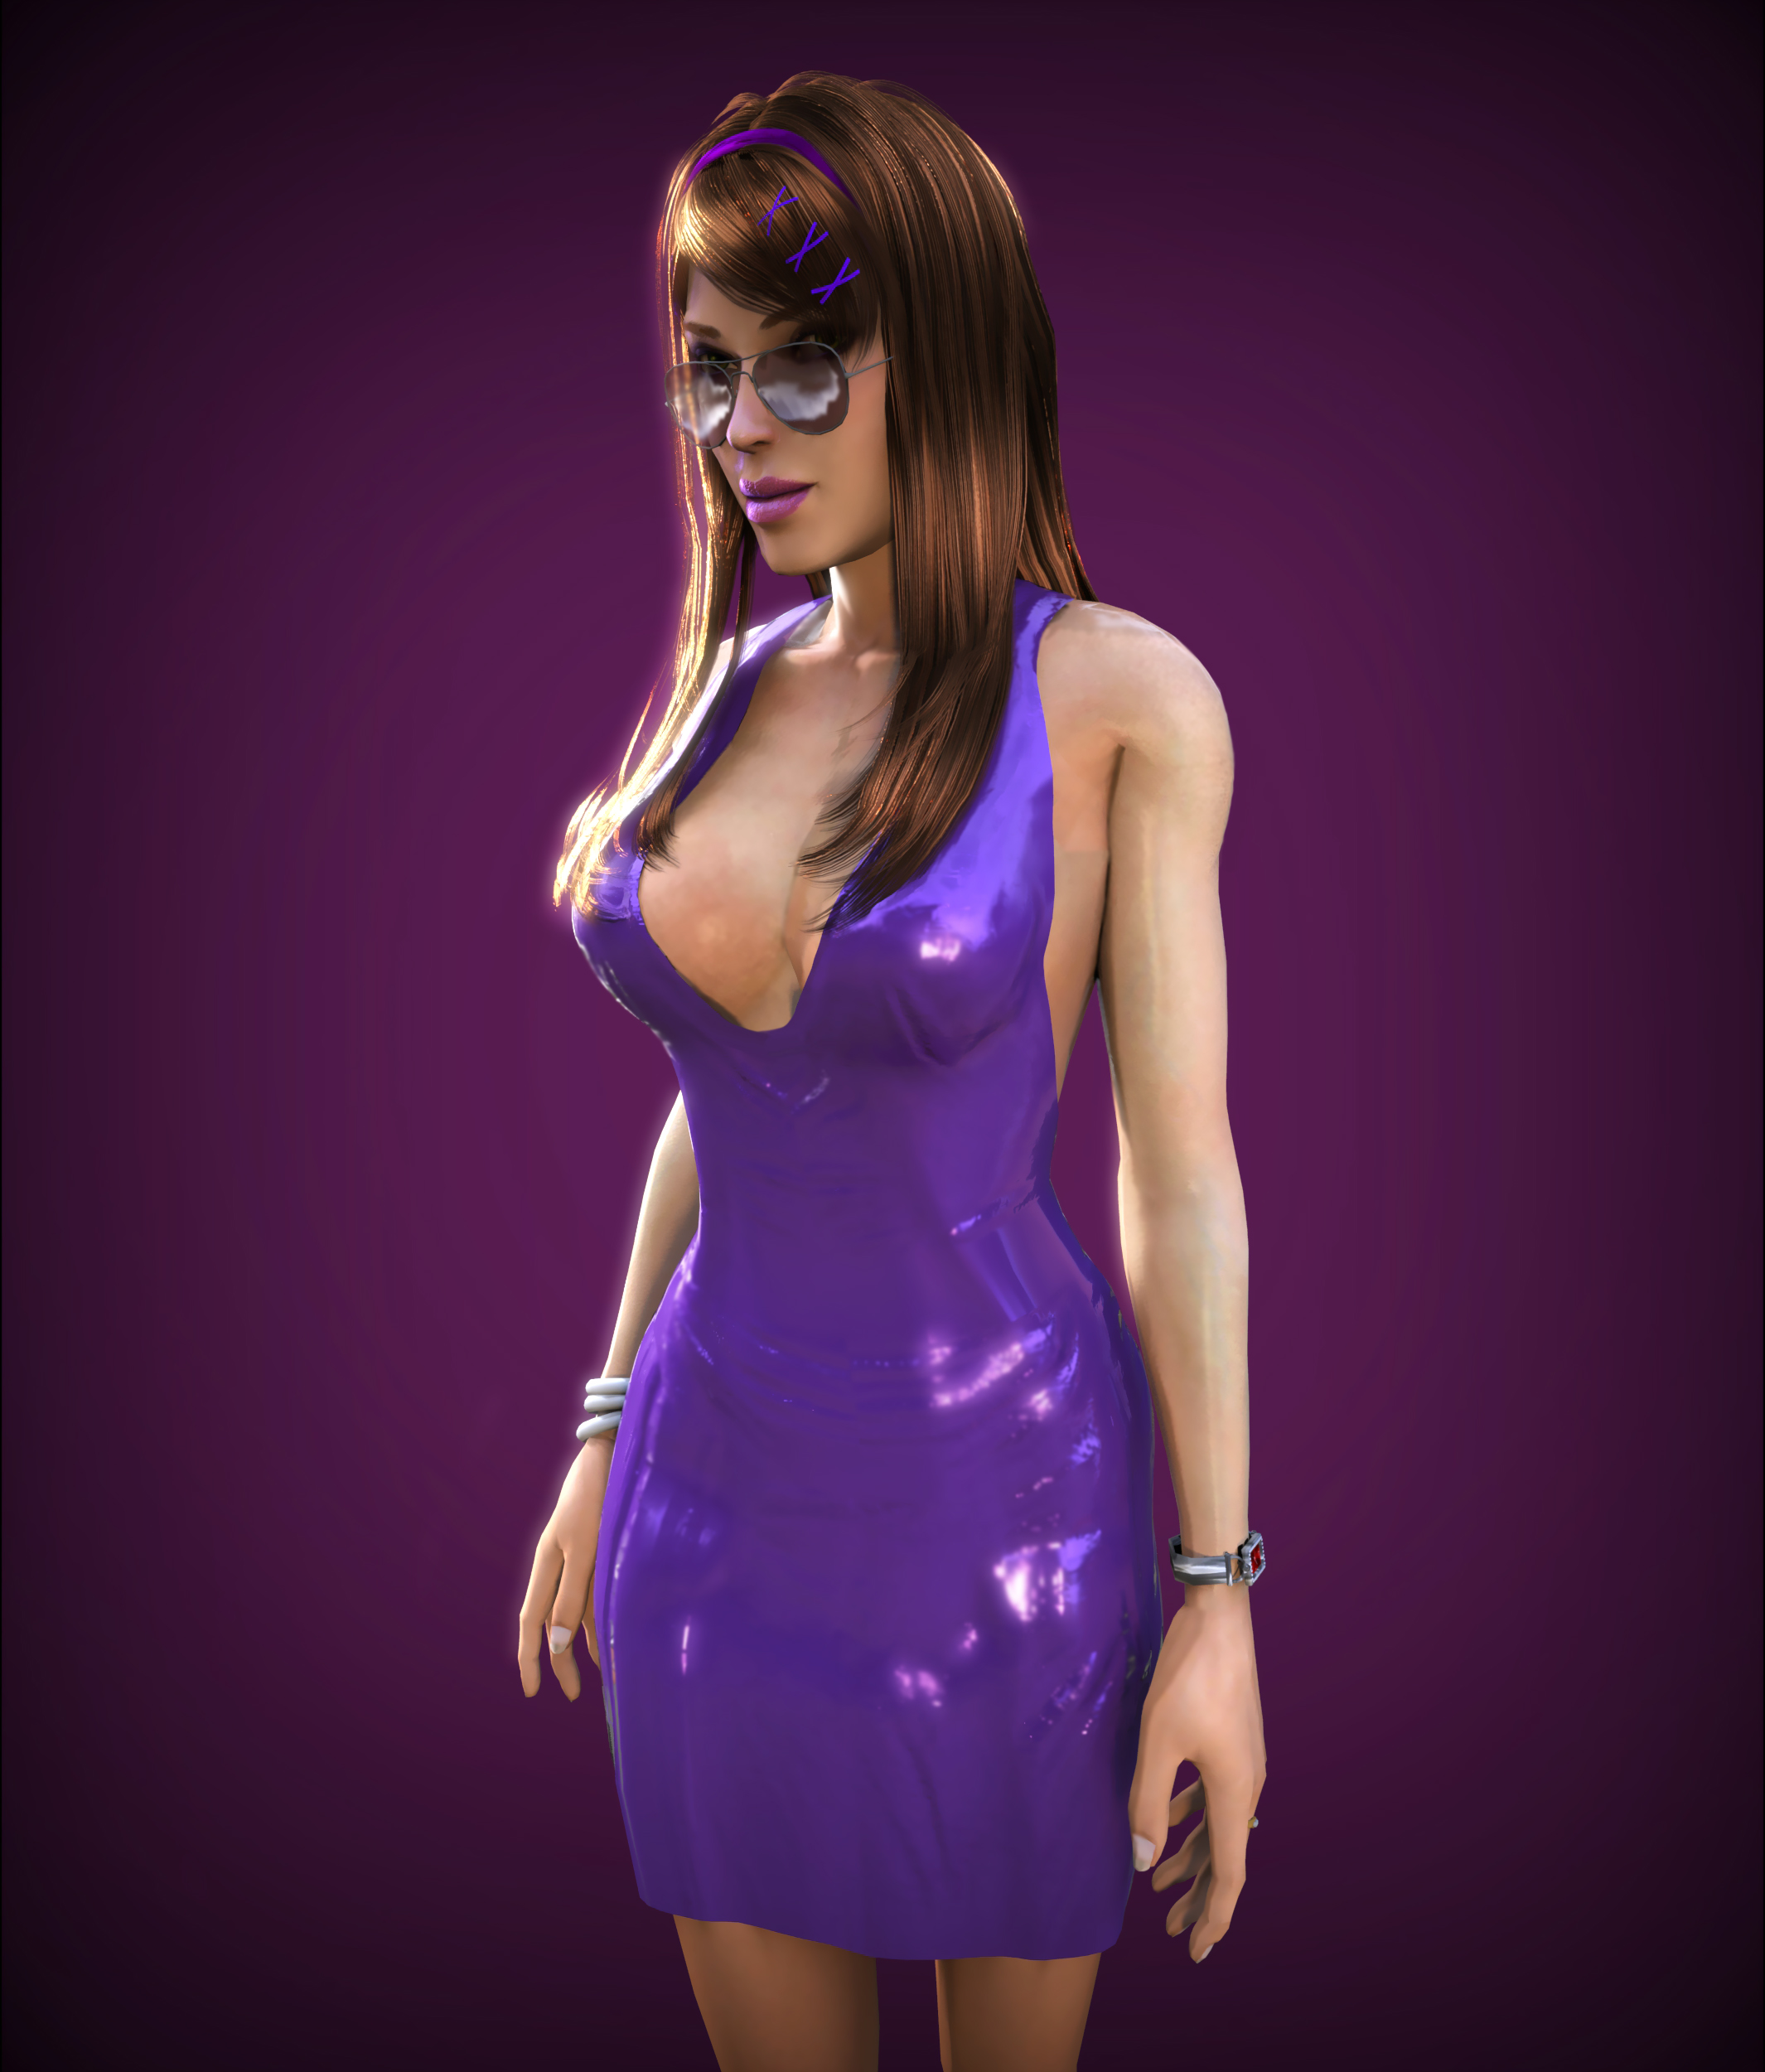 Velma from scooby doo has an amazing pair of tits 5